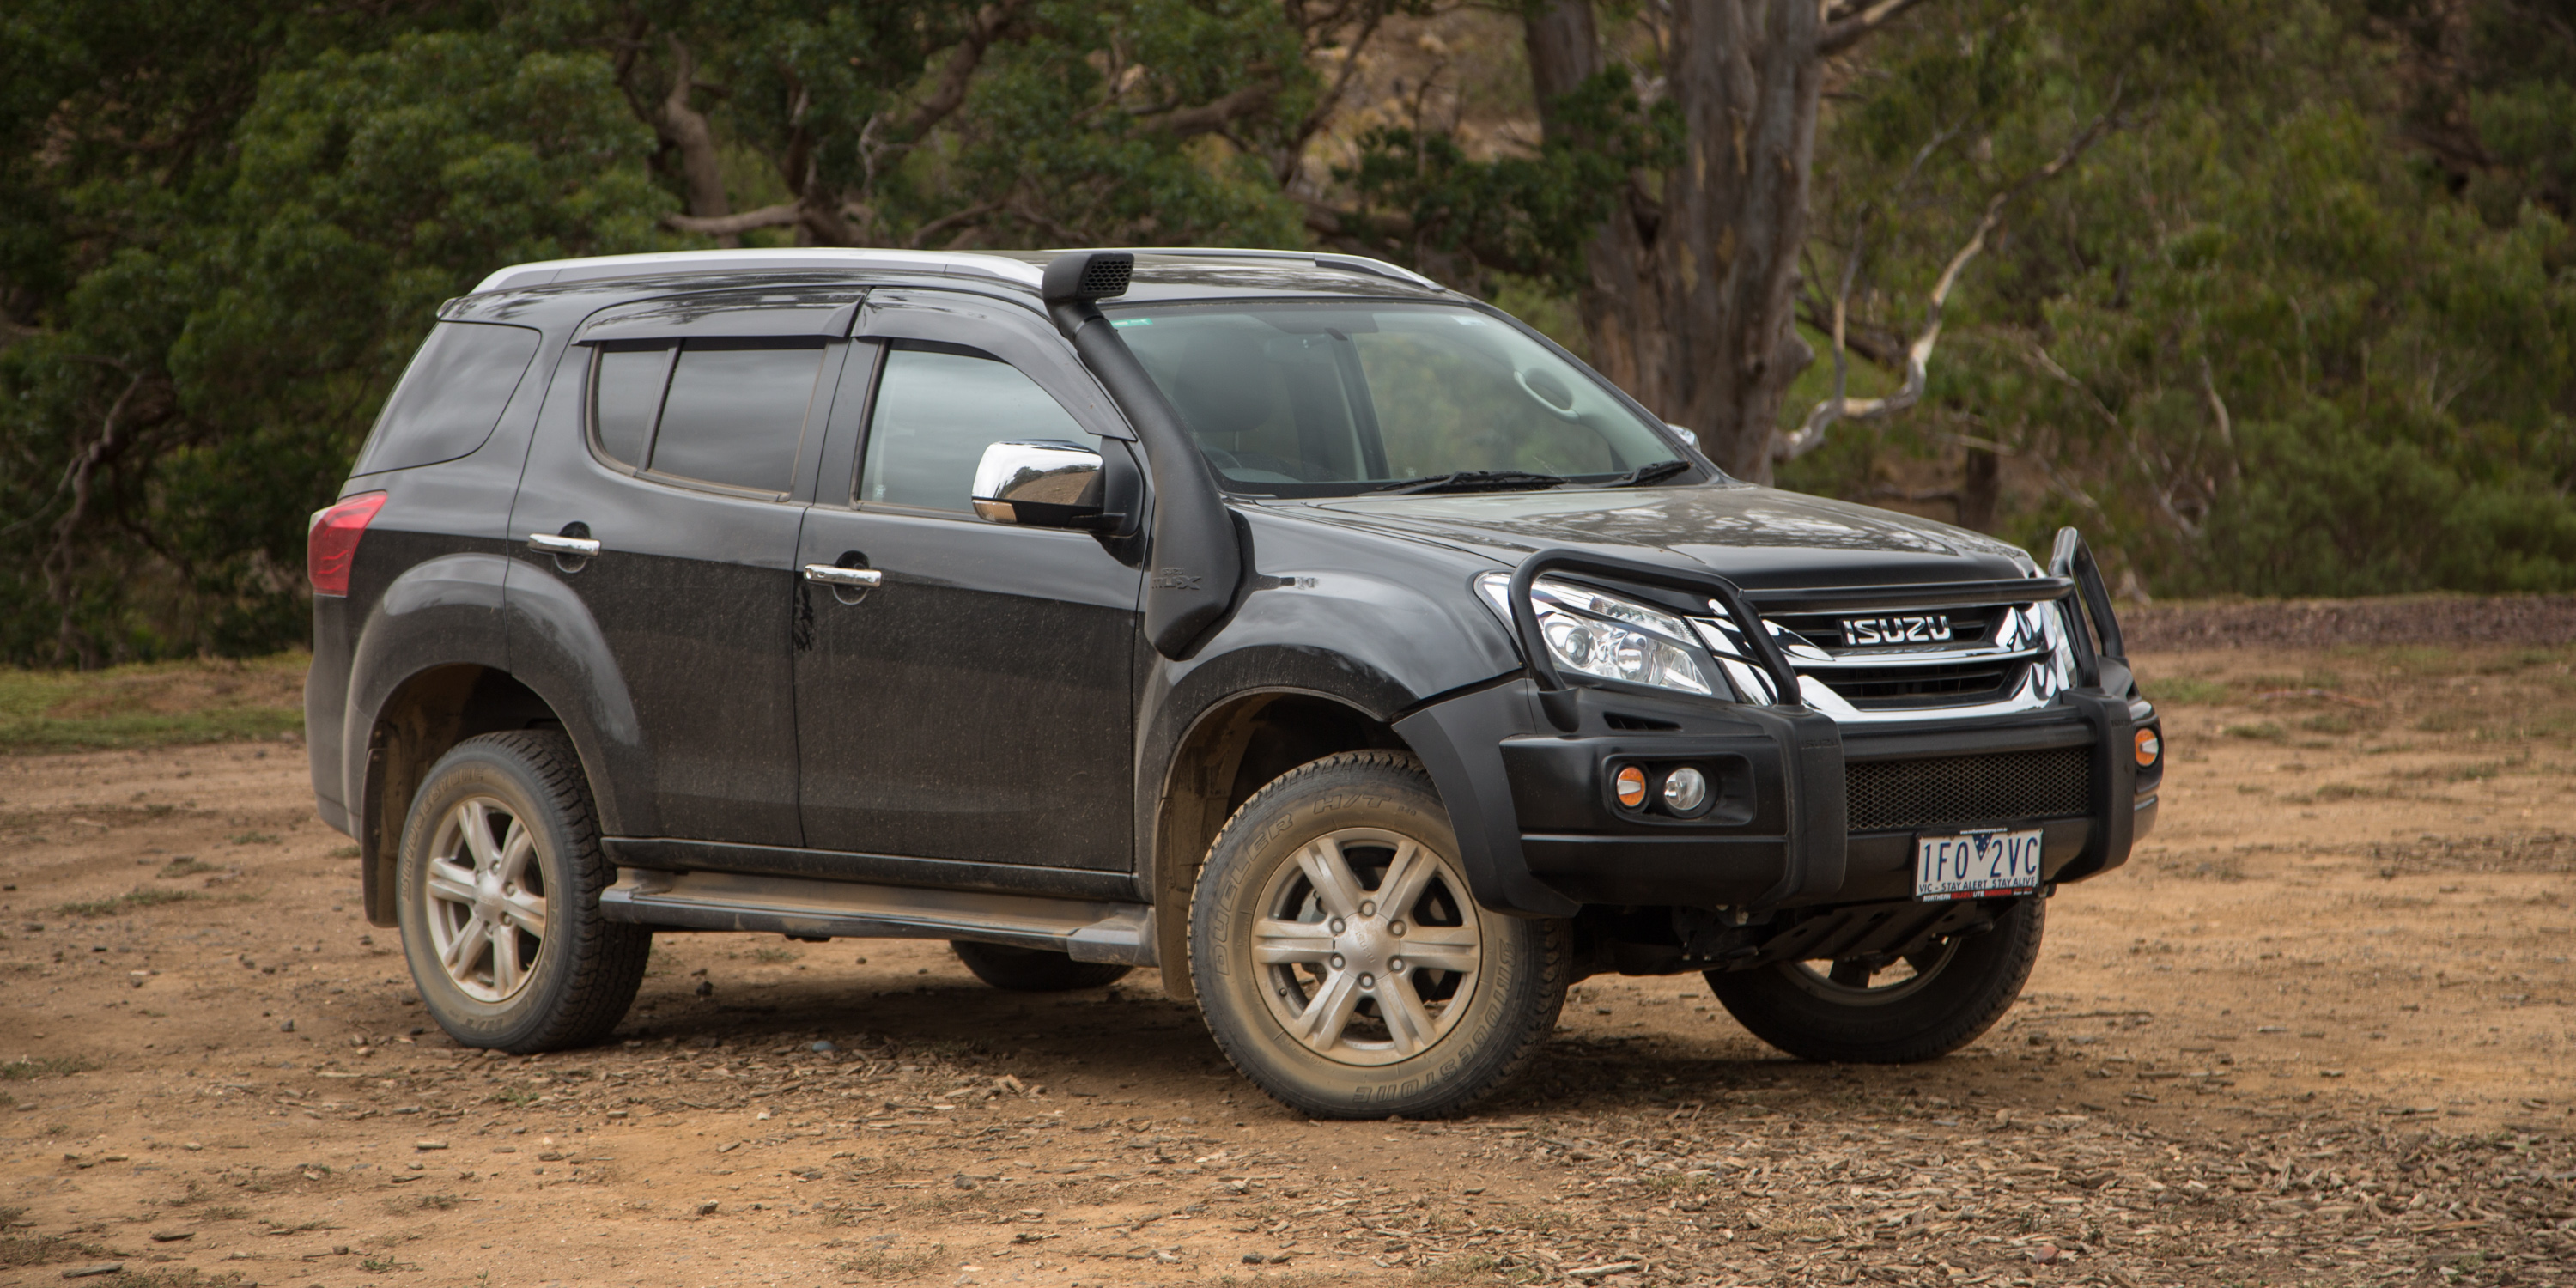 New compare isuzu mu x vs toyota fortuner release reviews and models